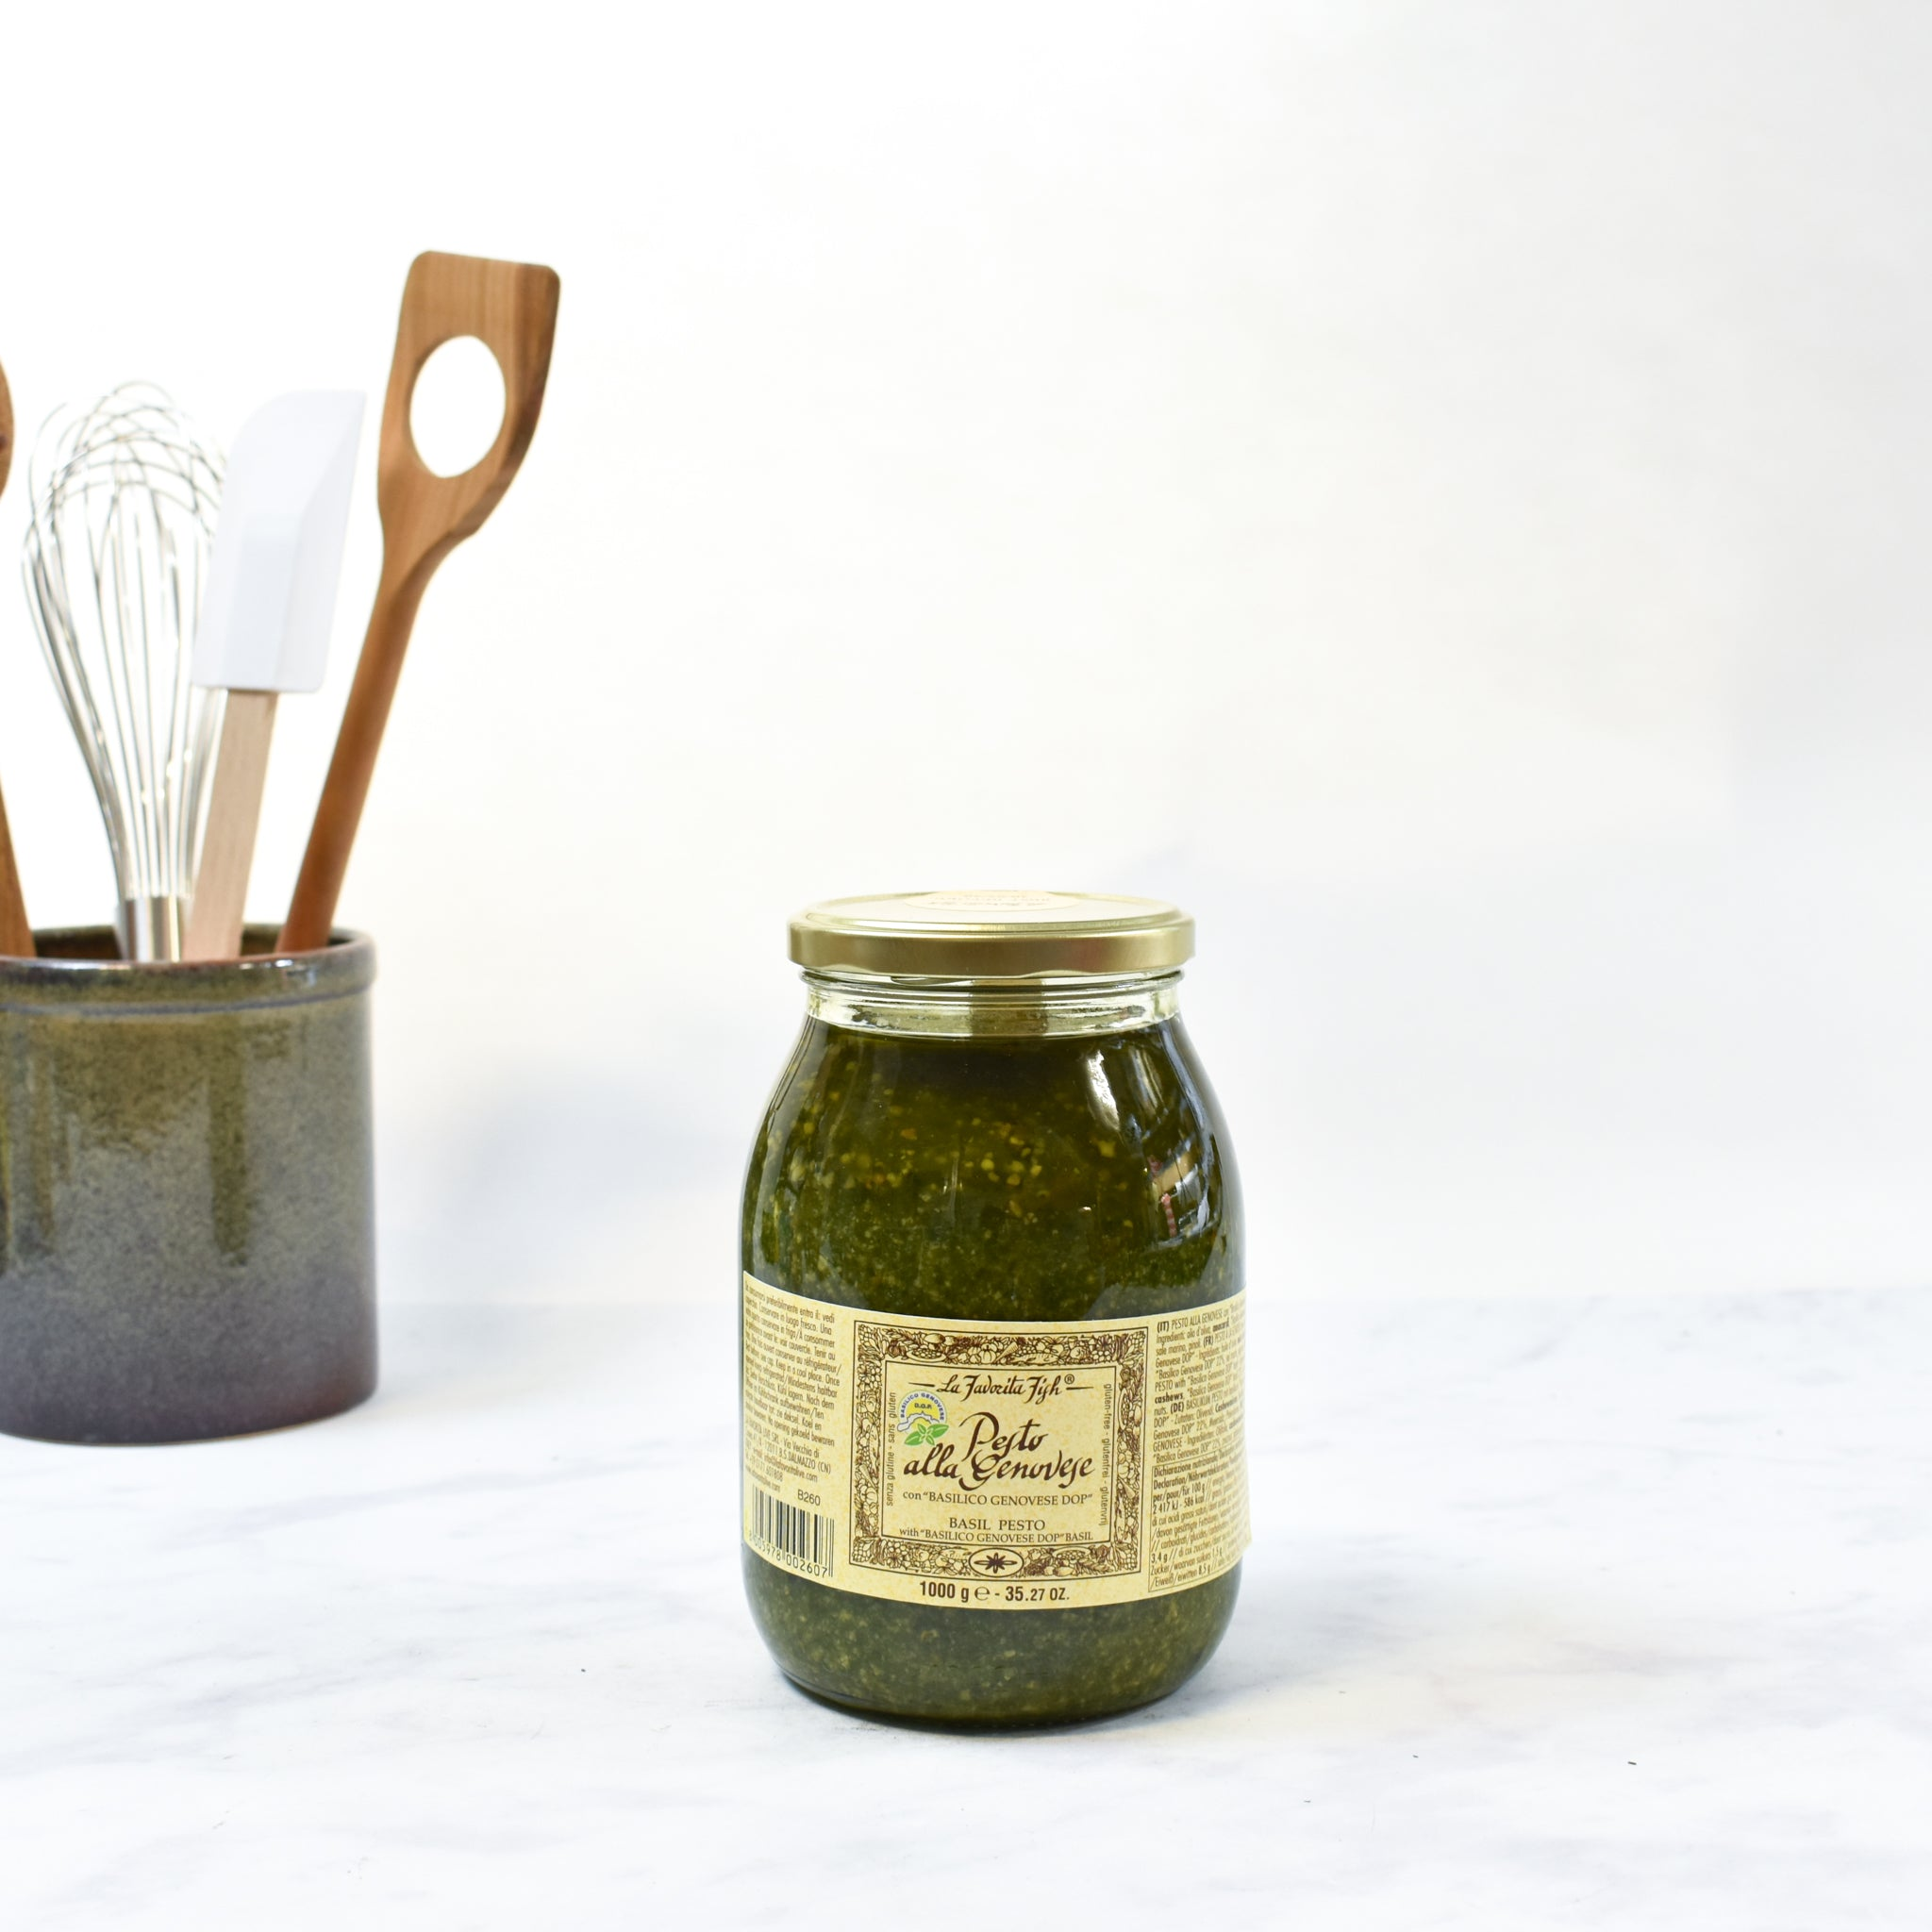 La Favorita Pesto With Genovese Basil DOP 1kg lifestyle photograph